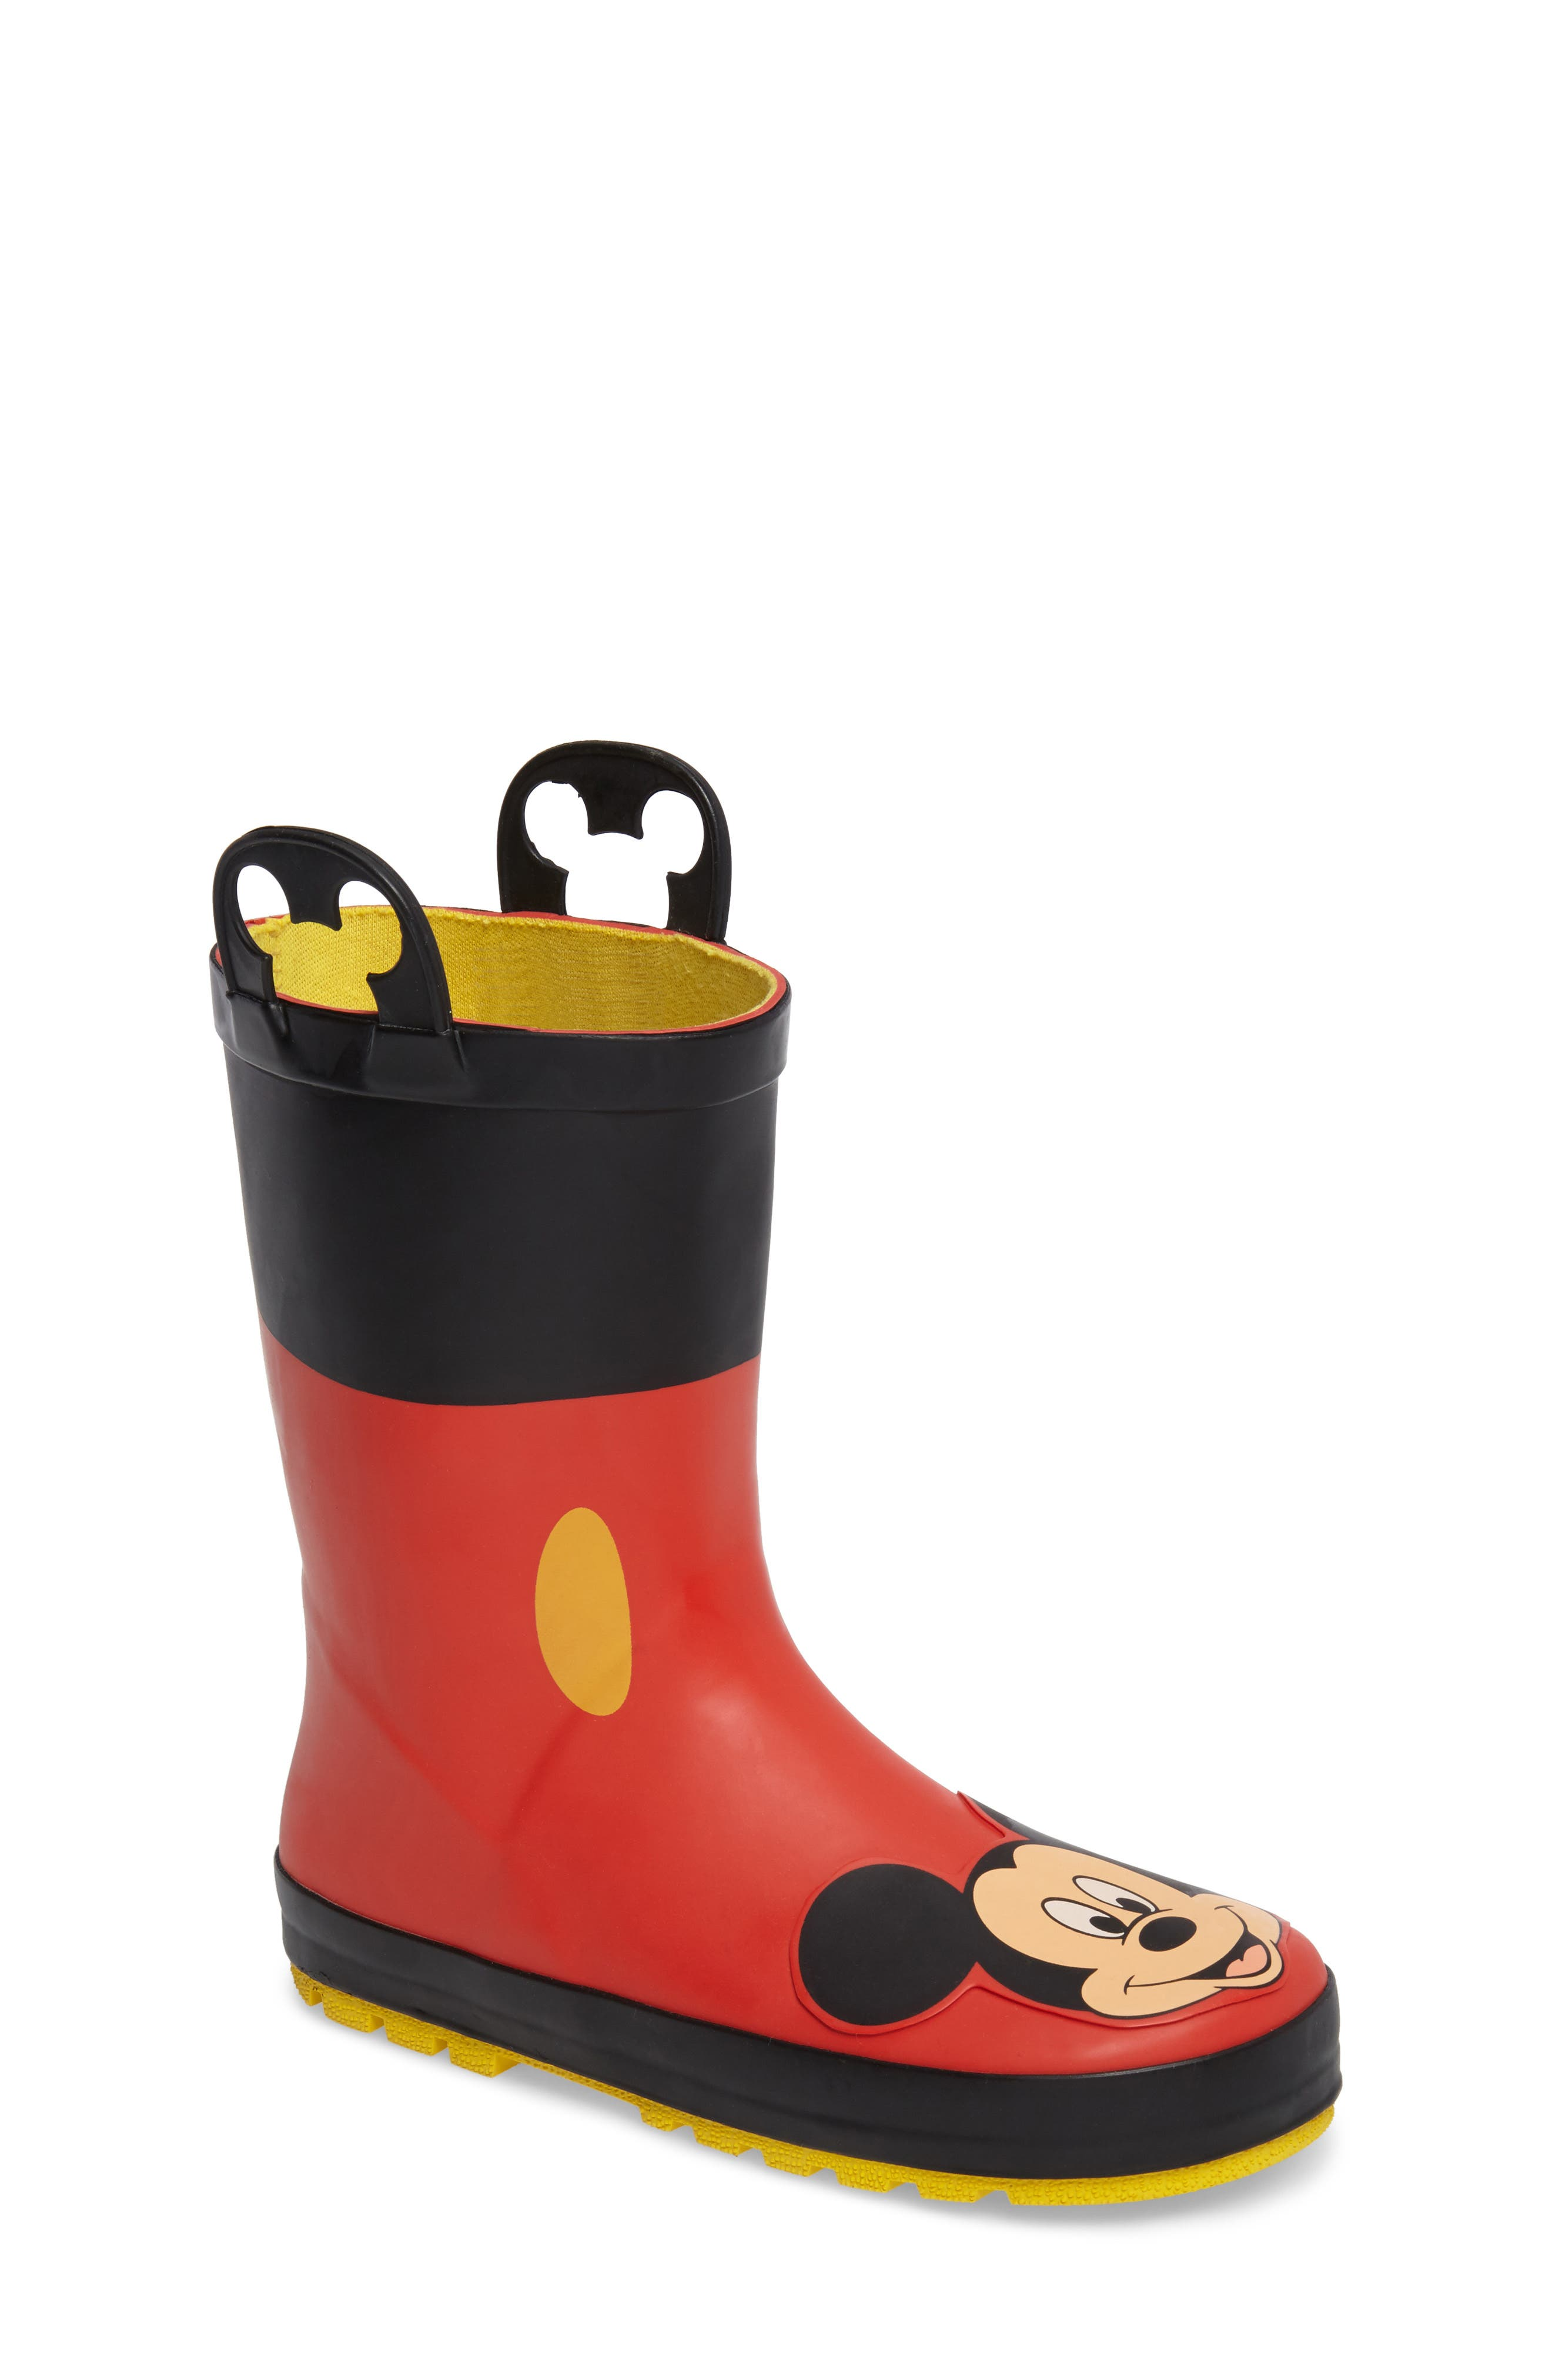 Mickey Mouse Rain Boot,                             Main thumbnail 1, color,                             RED